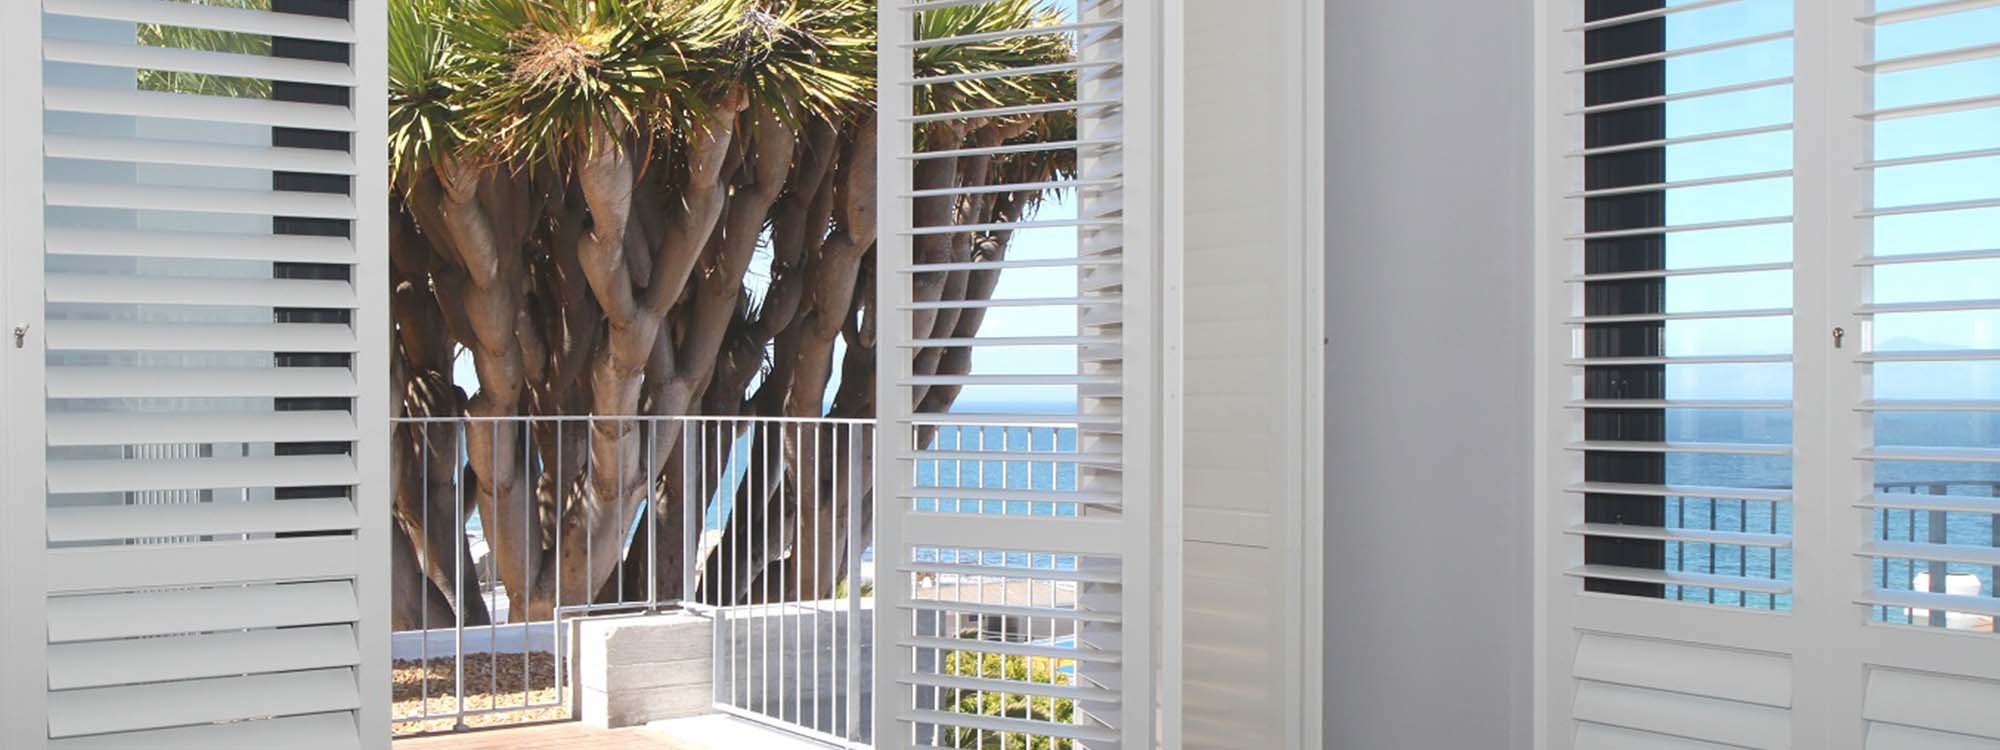 Security-shutters-patio-natural-light